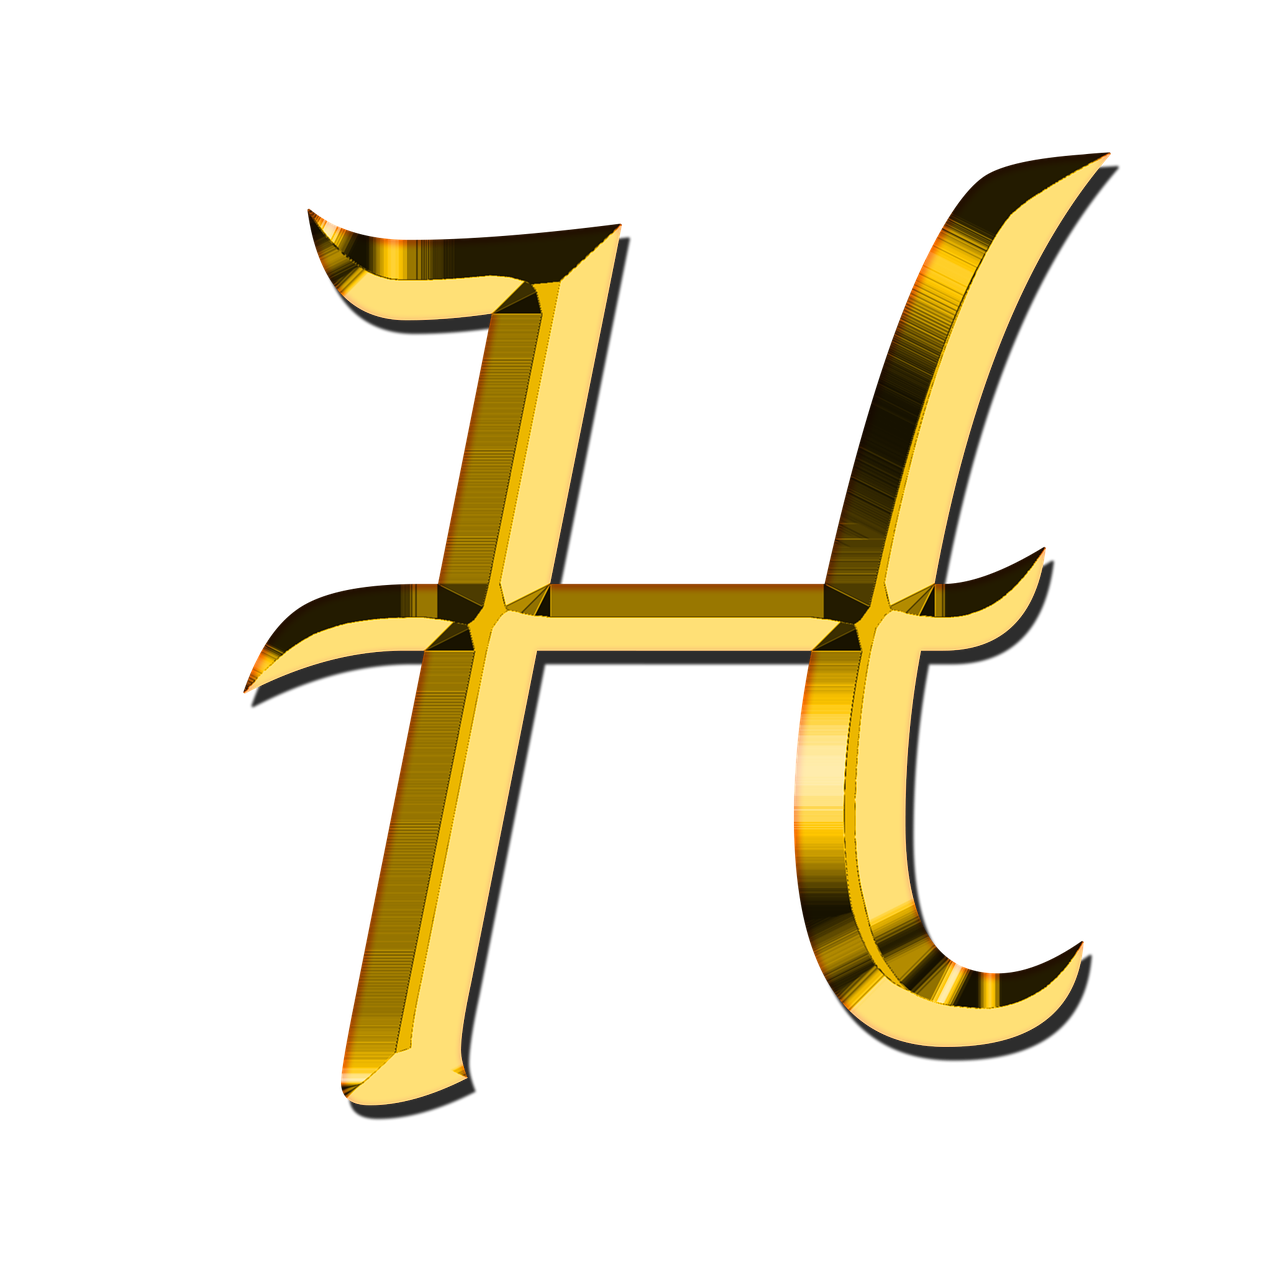 Letters Abc H - Free image on Pixabay